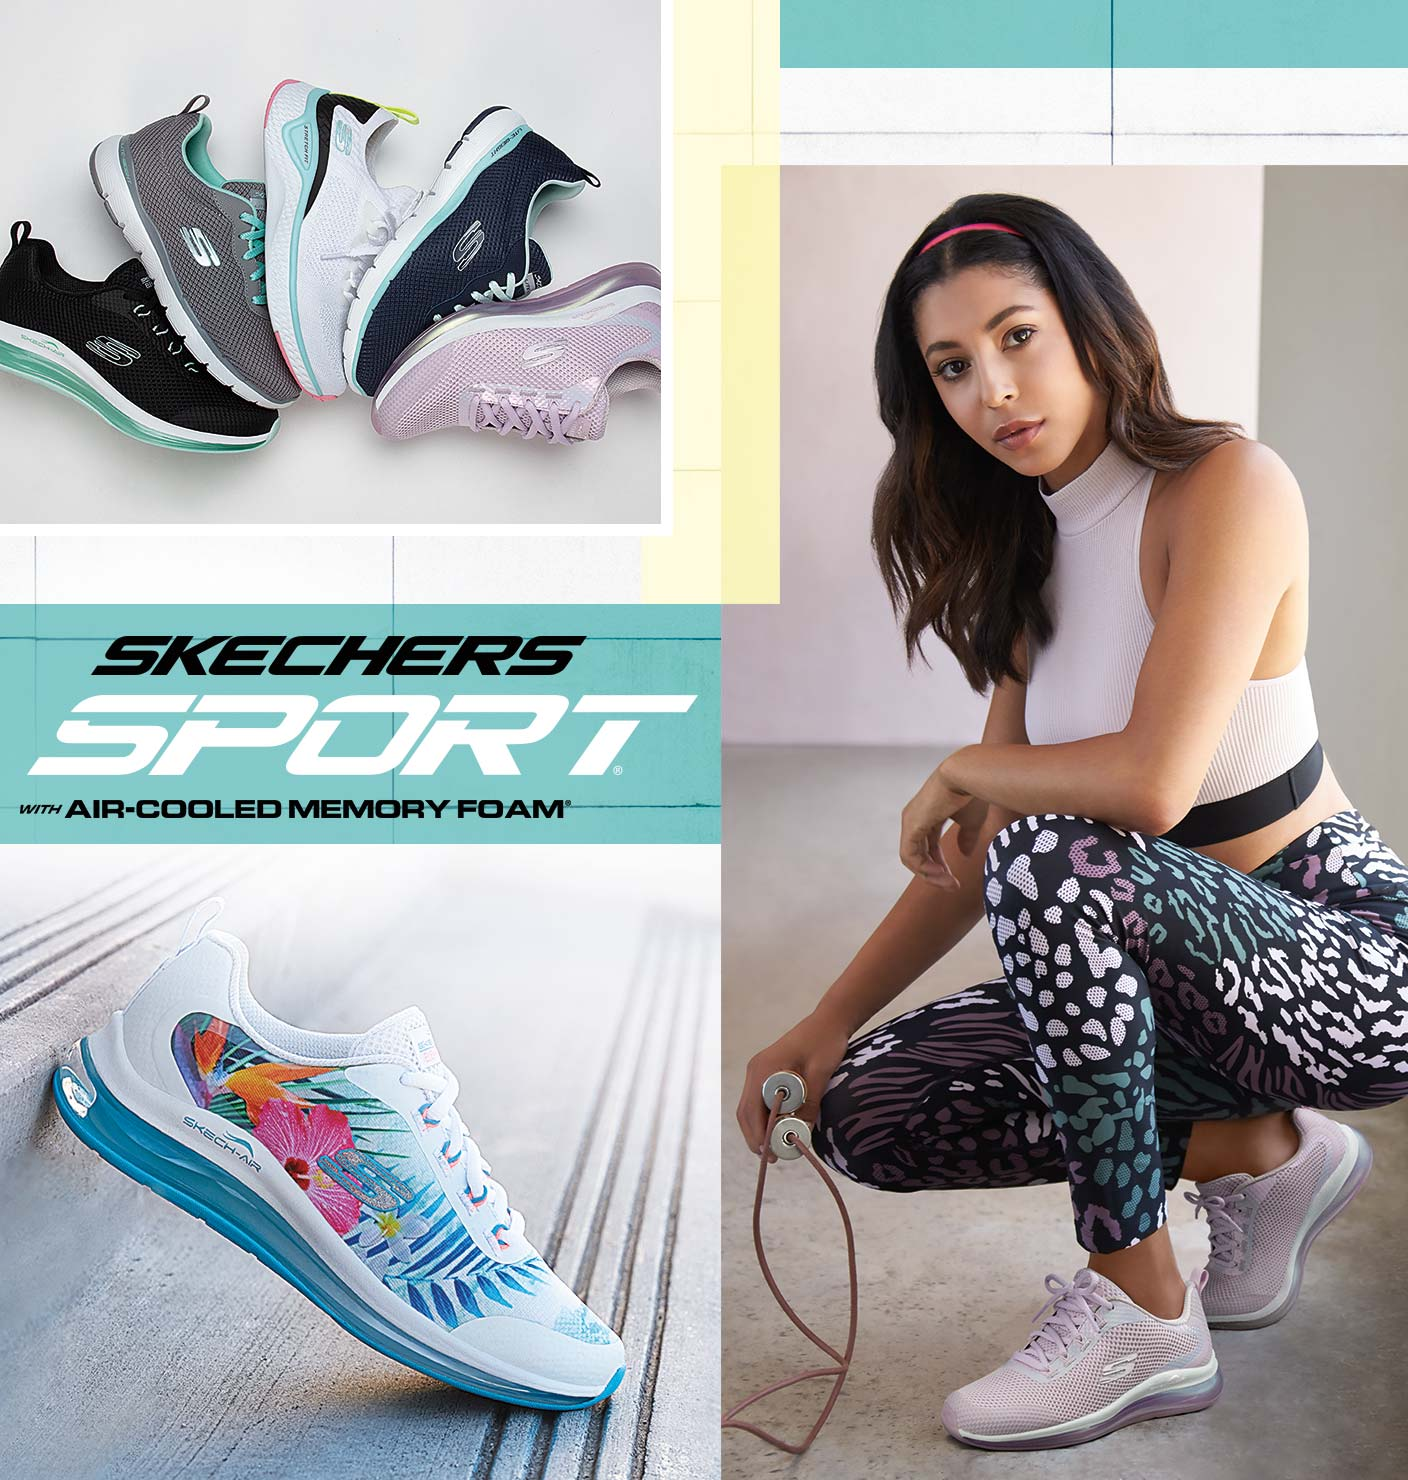 skechers shoes online ireland